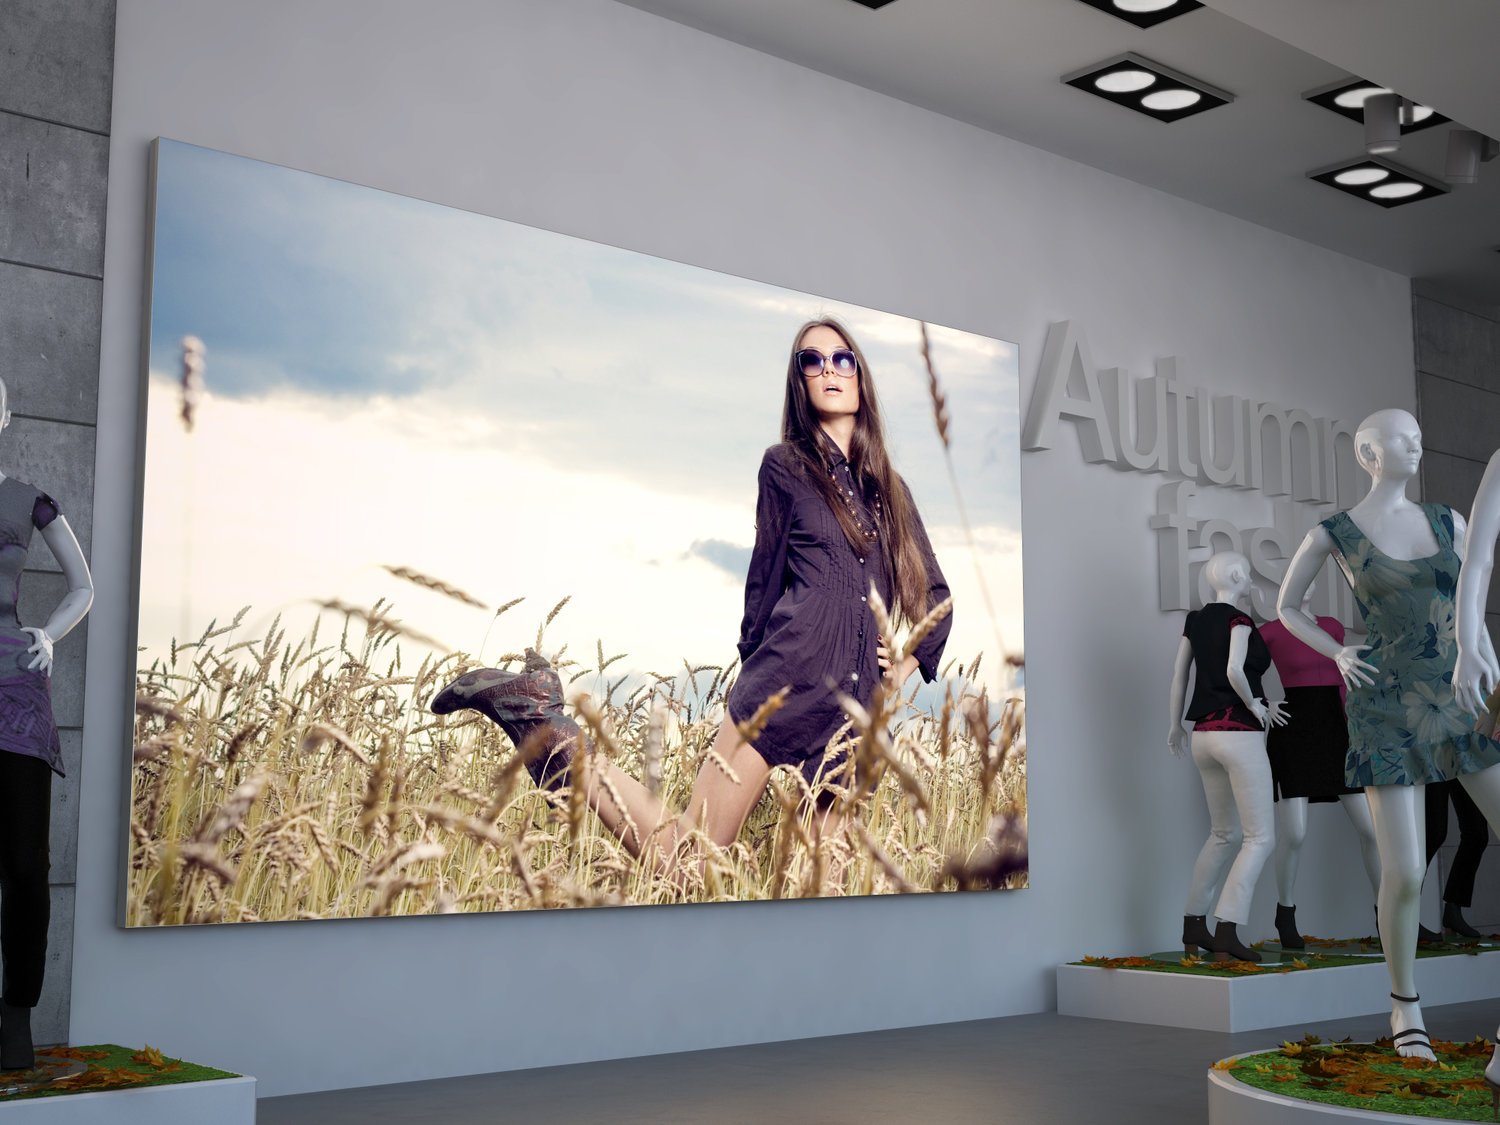 Tension Fabric Frames (TFS Displays) — The Marketing Works